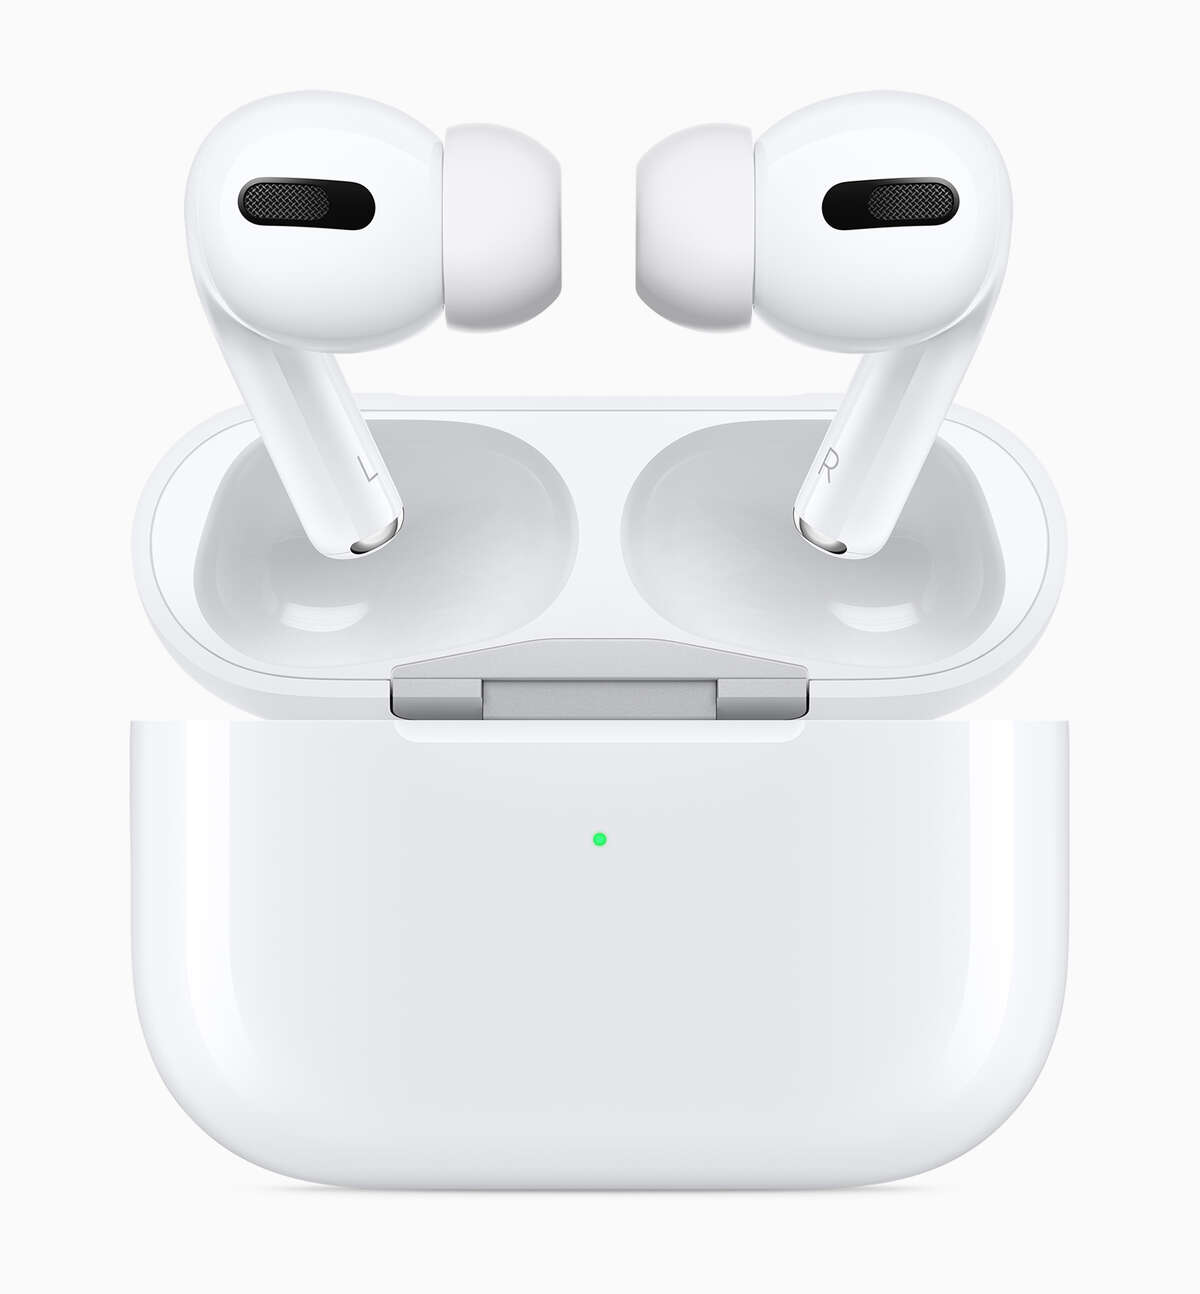 Apple's current AirPods Pro cost $249 and include noise canceling capabilities.